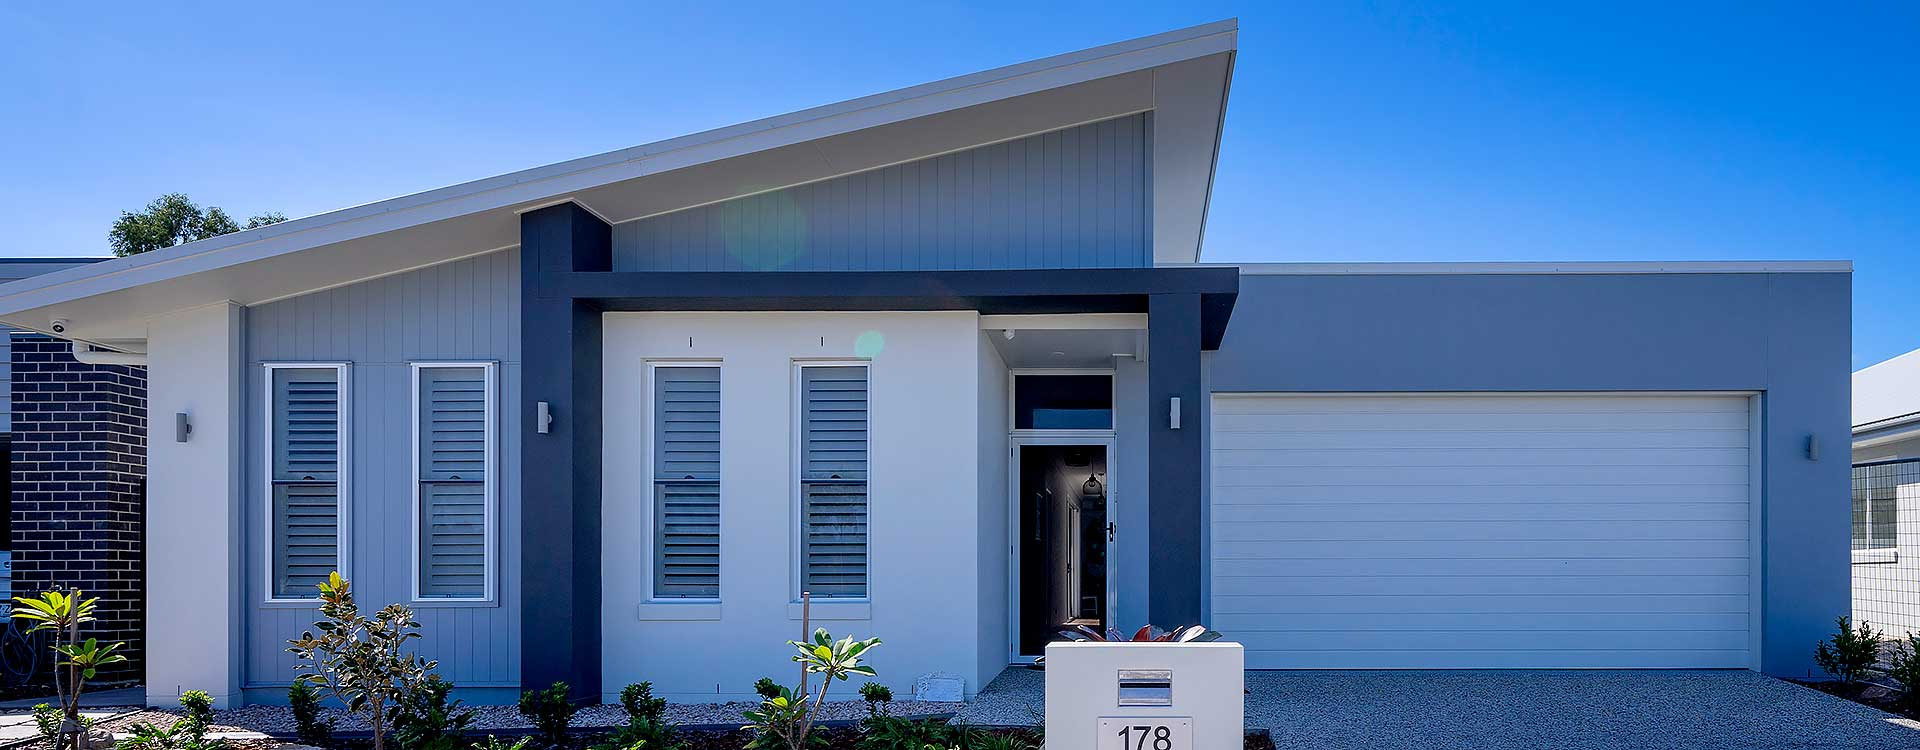 modern new home front